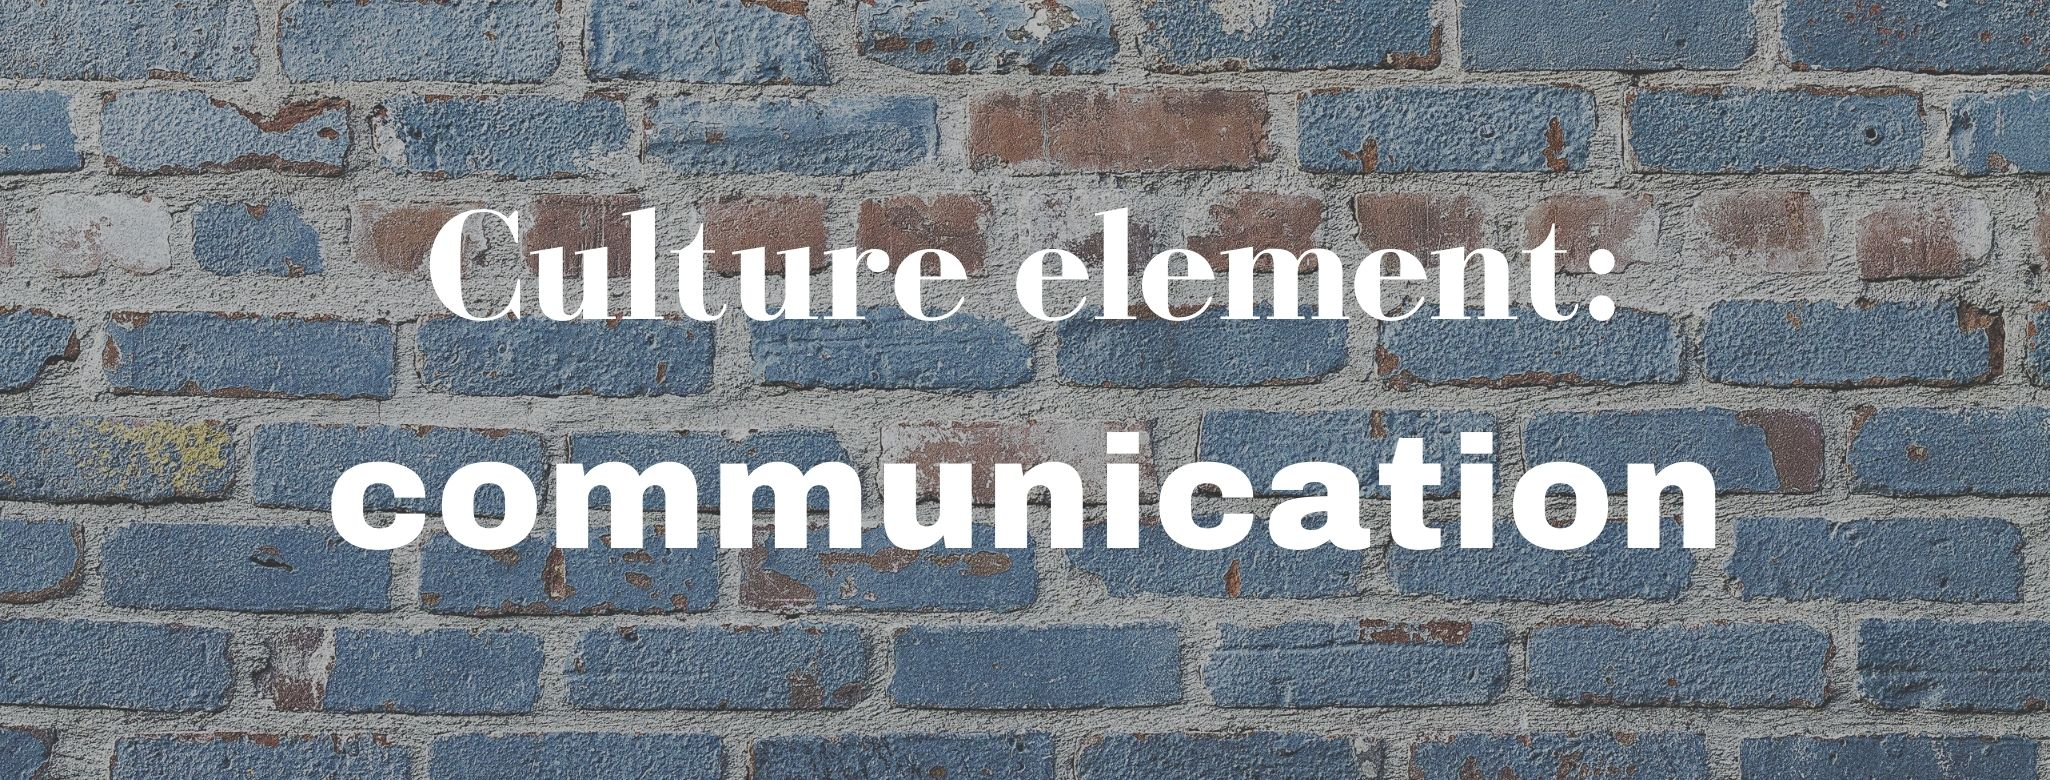 """A blue-painted brick wall with the words """"Culture element: communication"""" superimposed in white"""